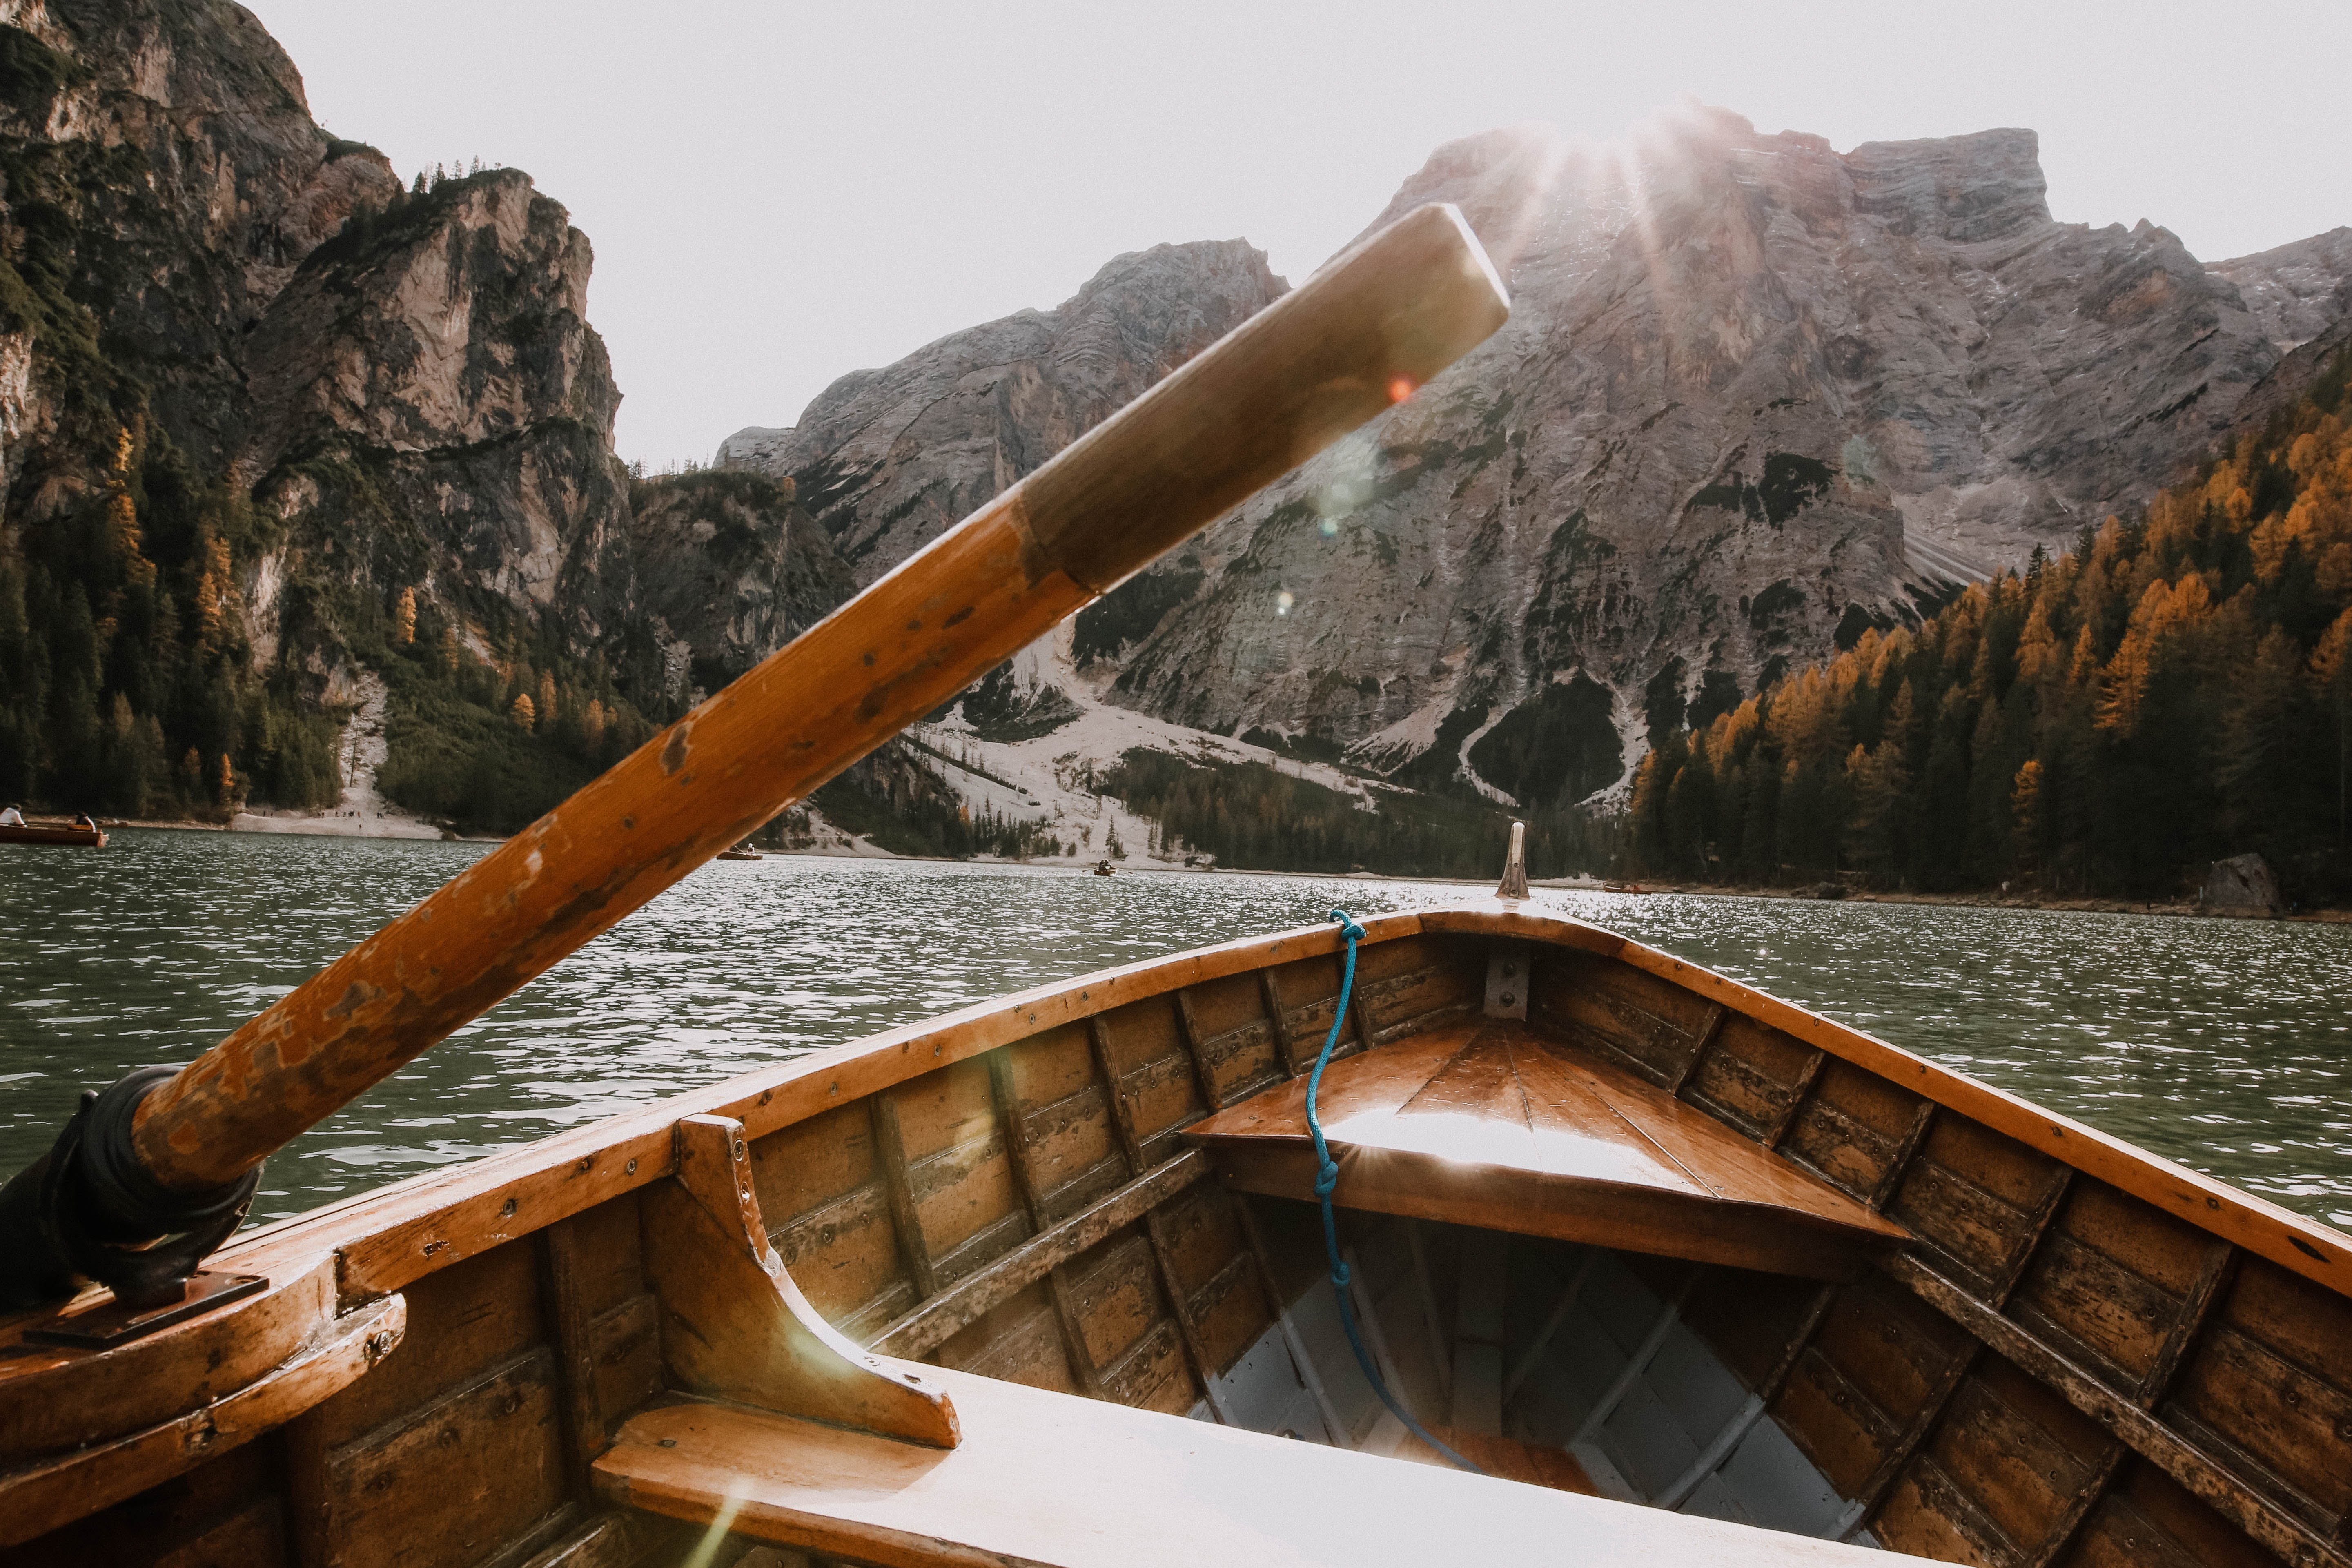 Brown Wooden Canoe on Body of Water Near Mountain